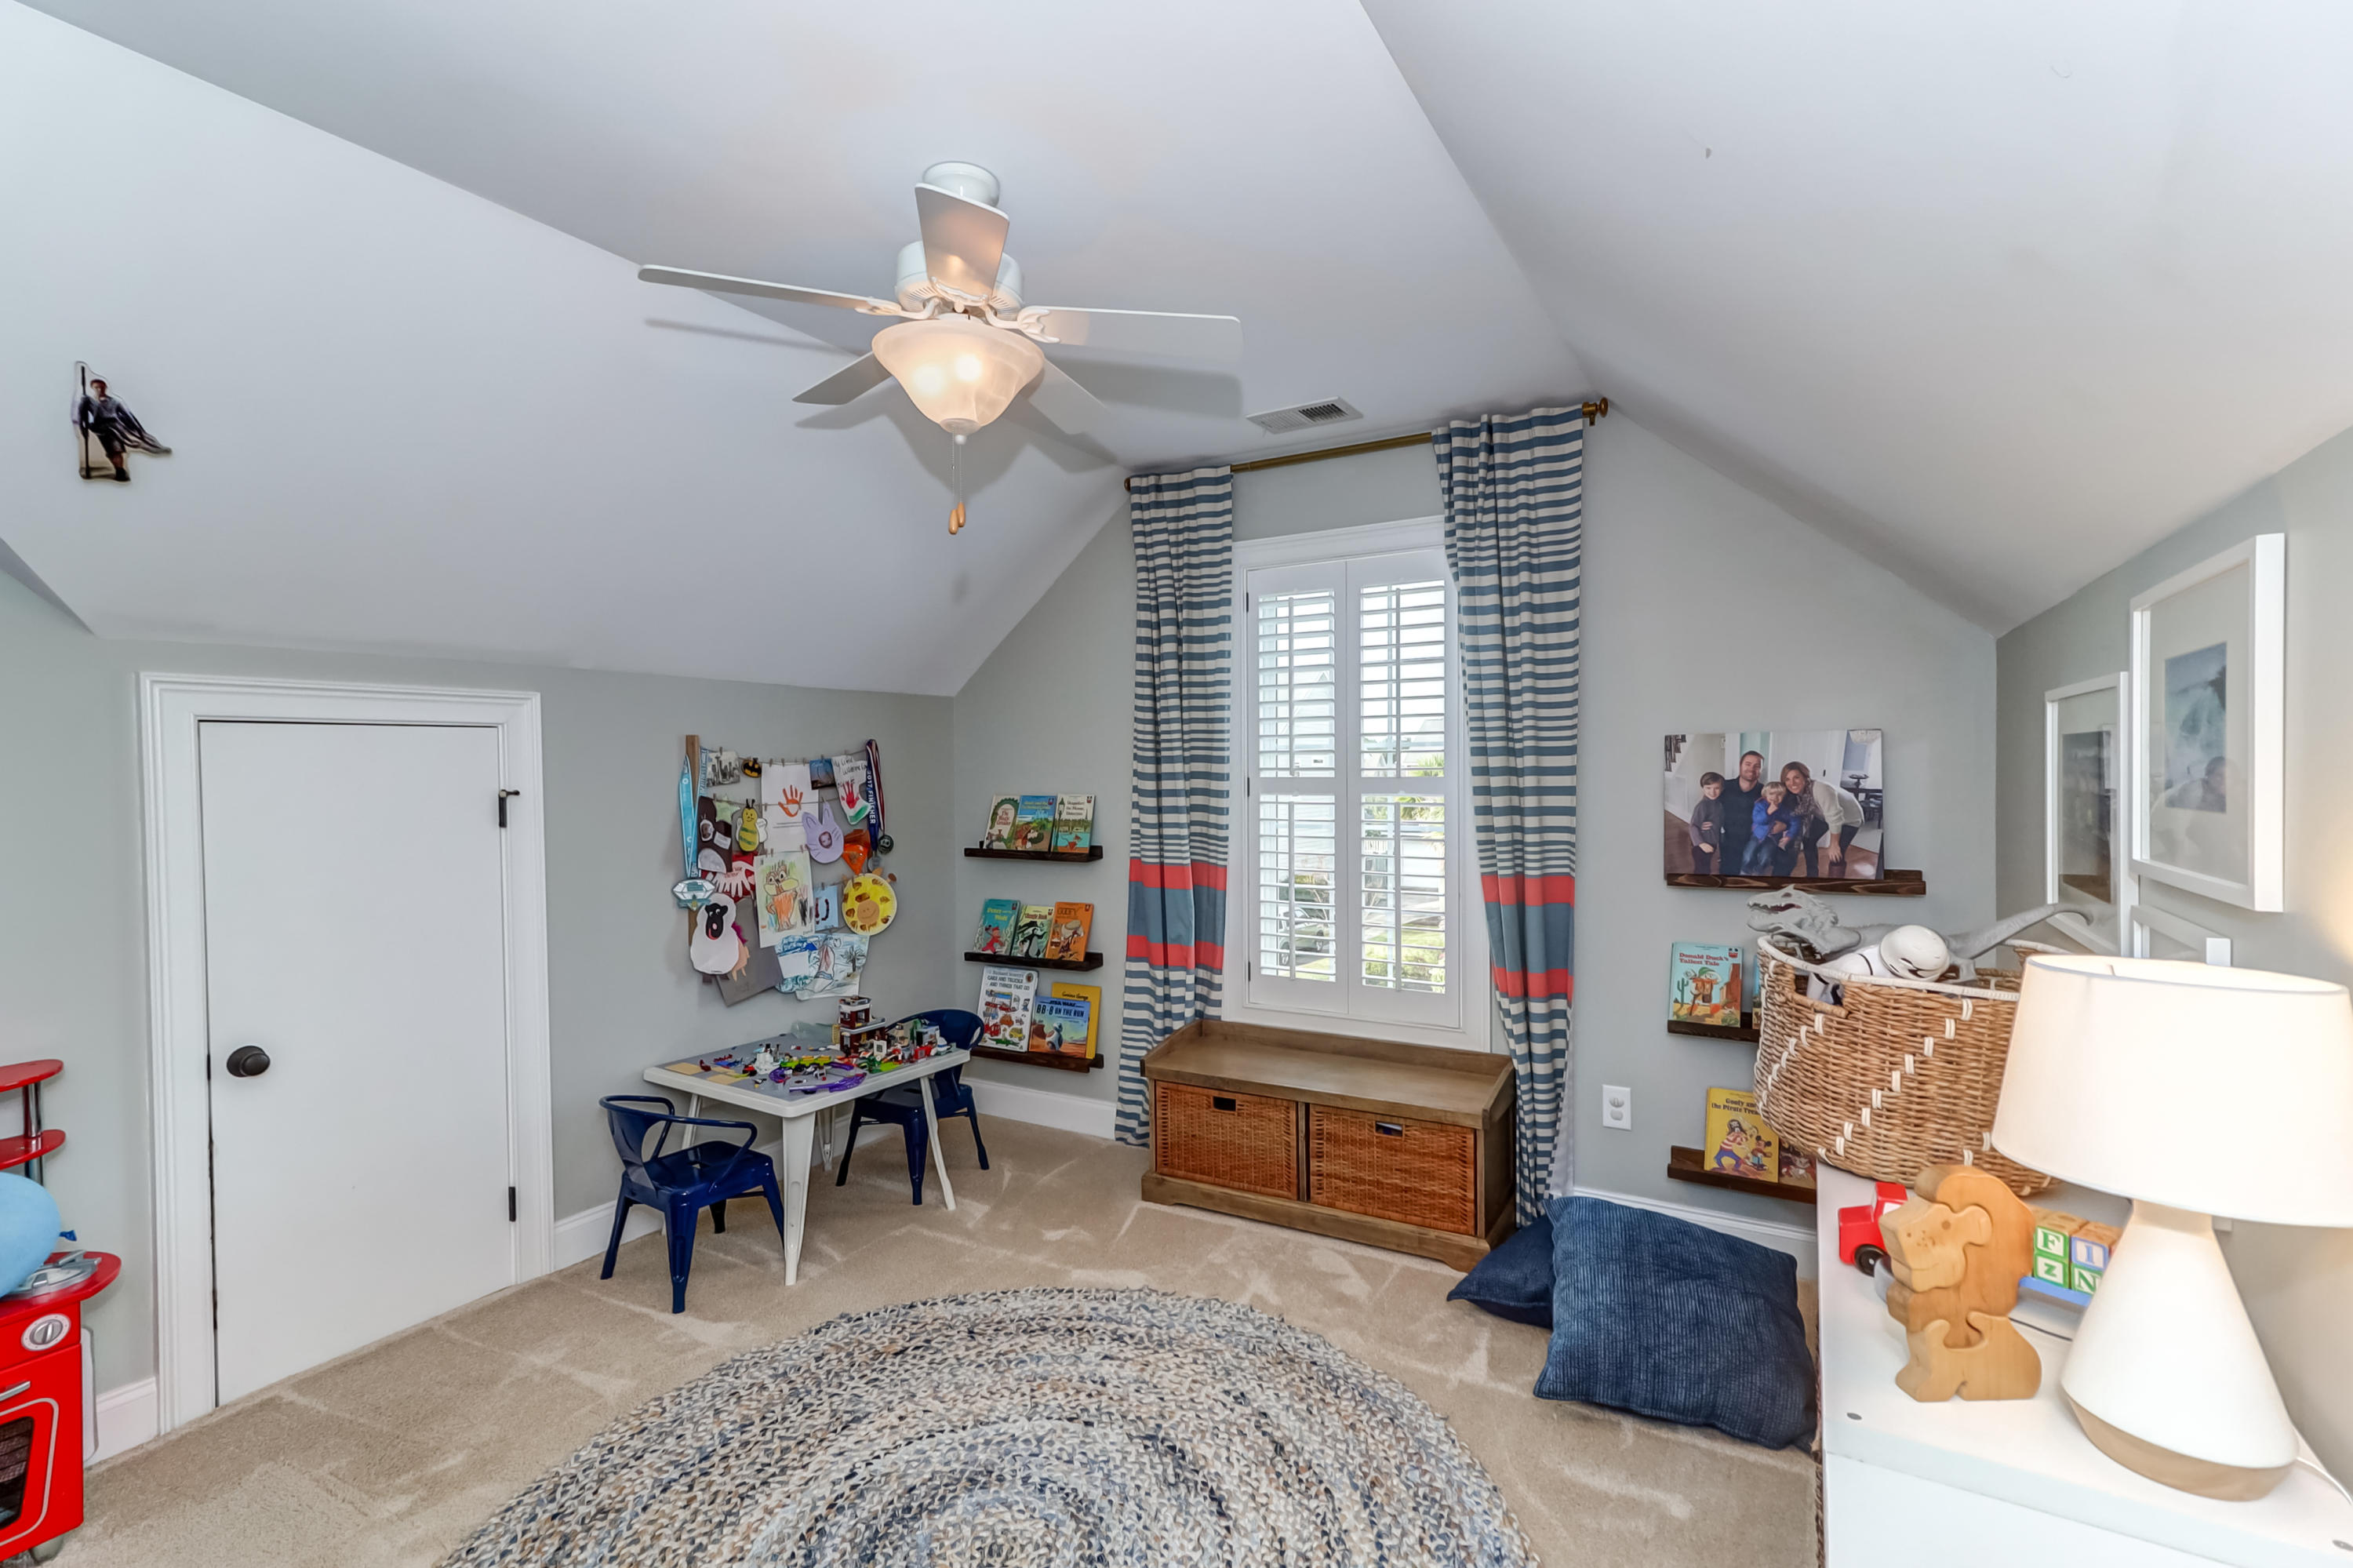 Woodward Pointe Homes For Sale - 657 White Chapel, Charleston, SC - 6